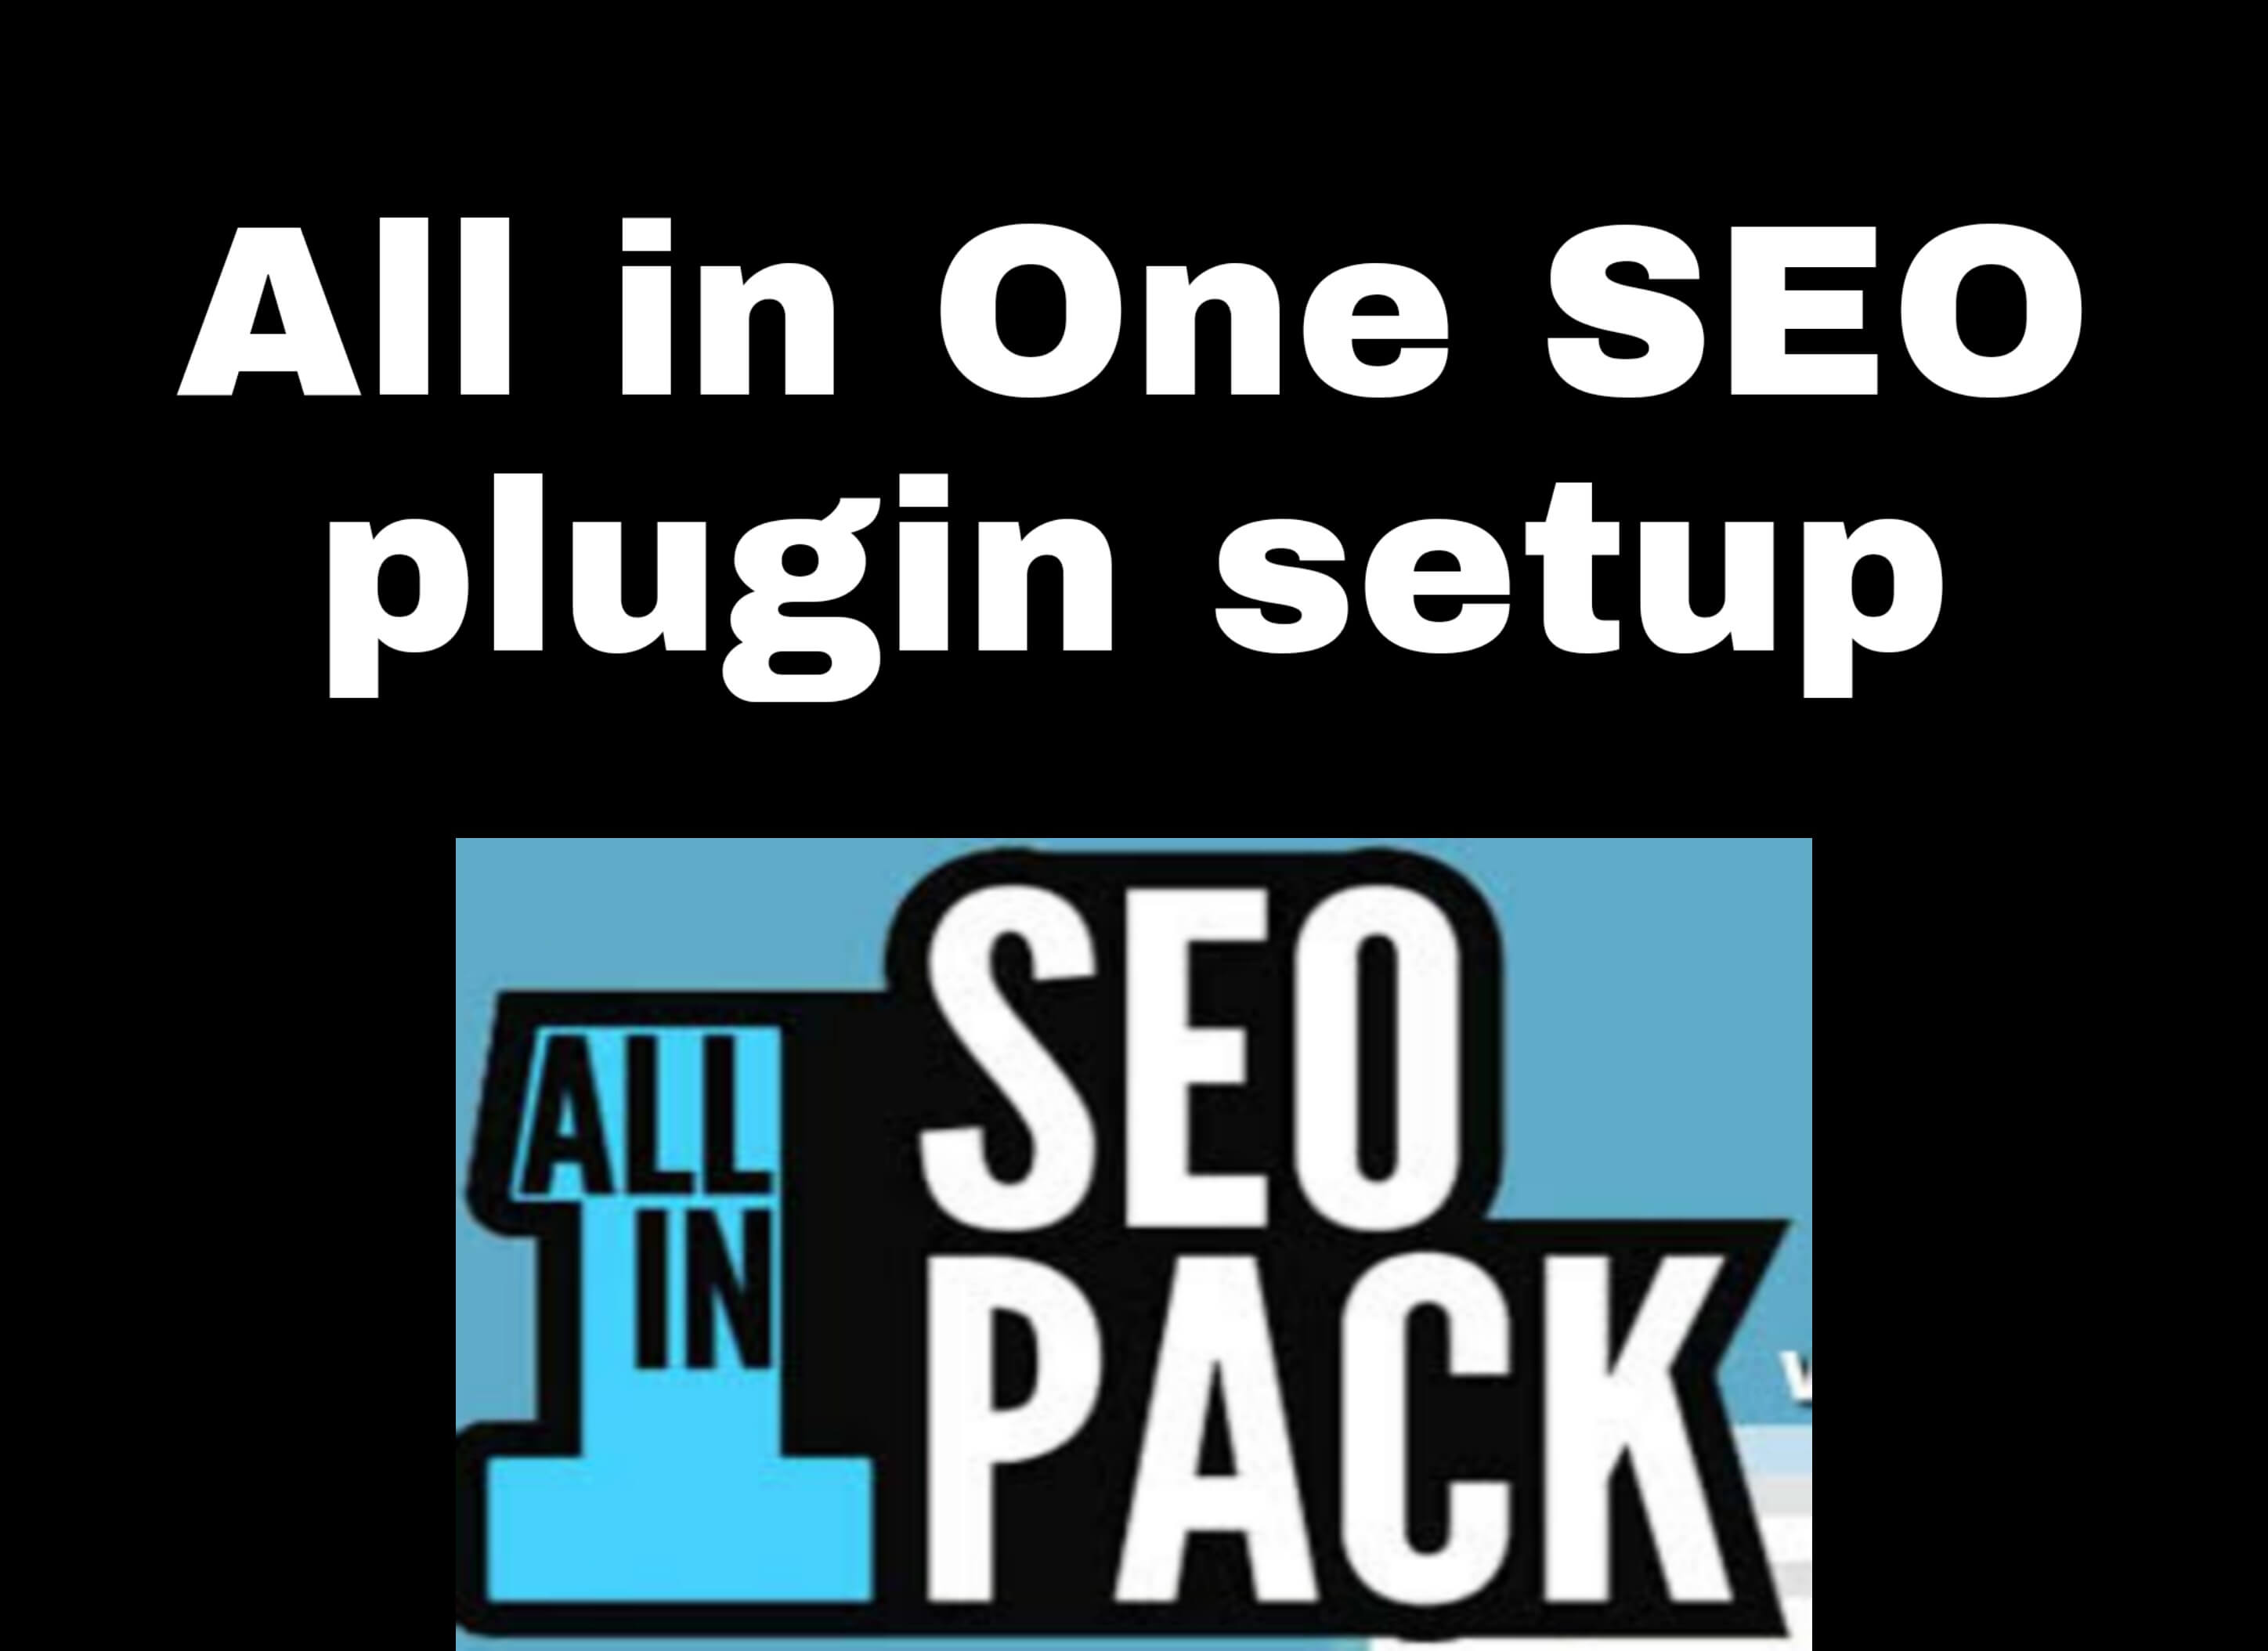 Best settings for All in one SEO plugin 2021